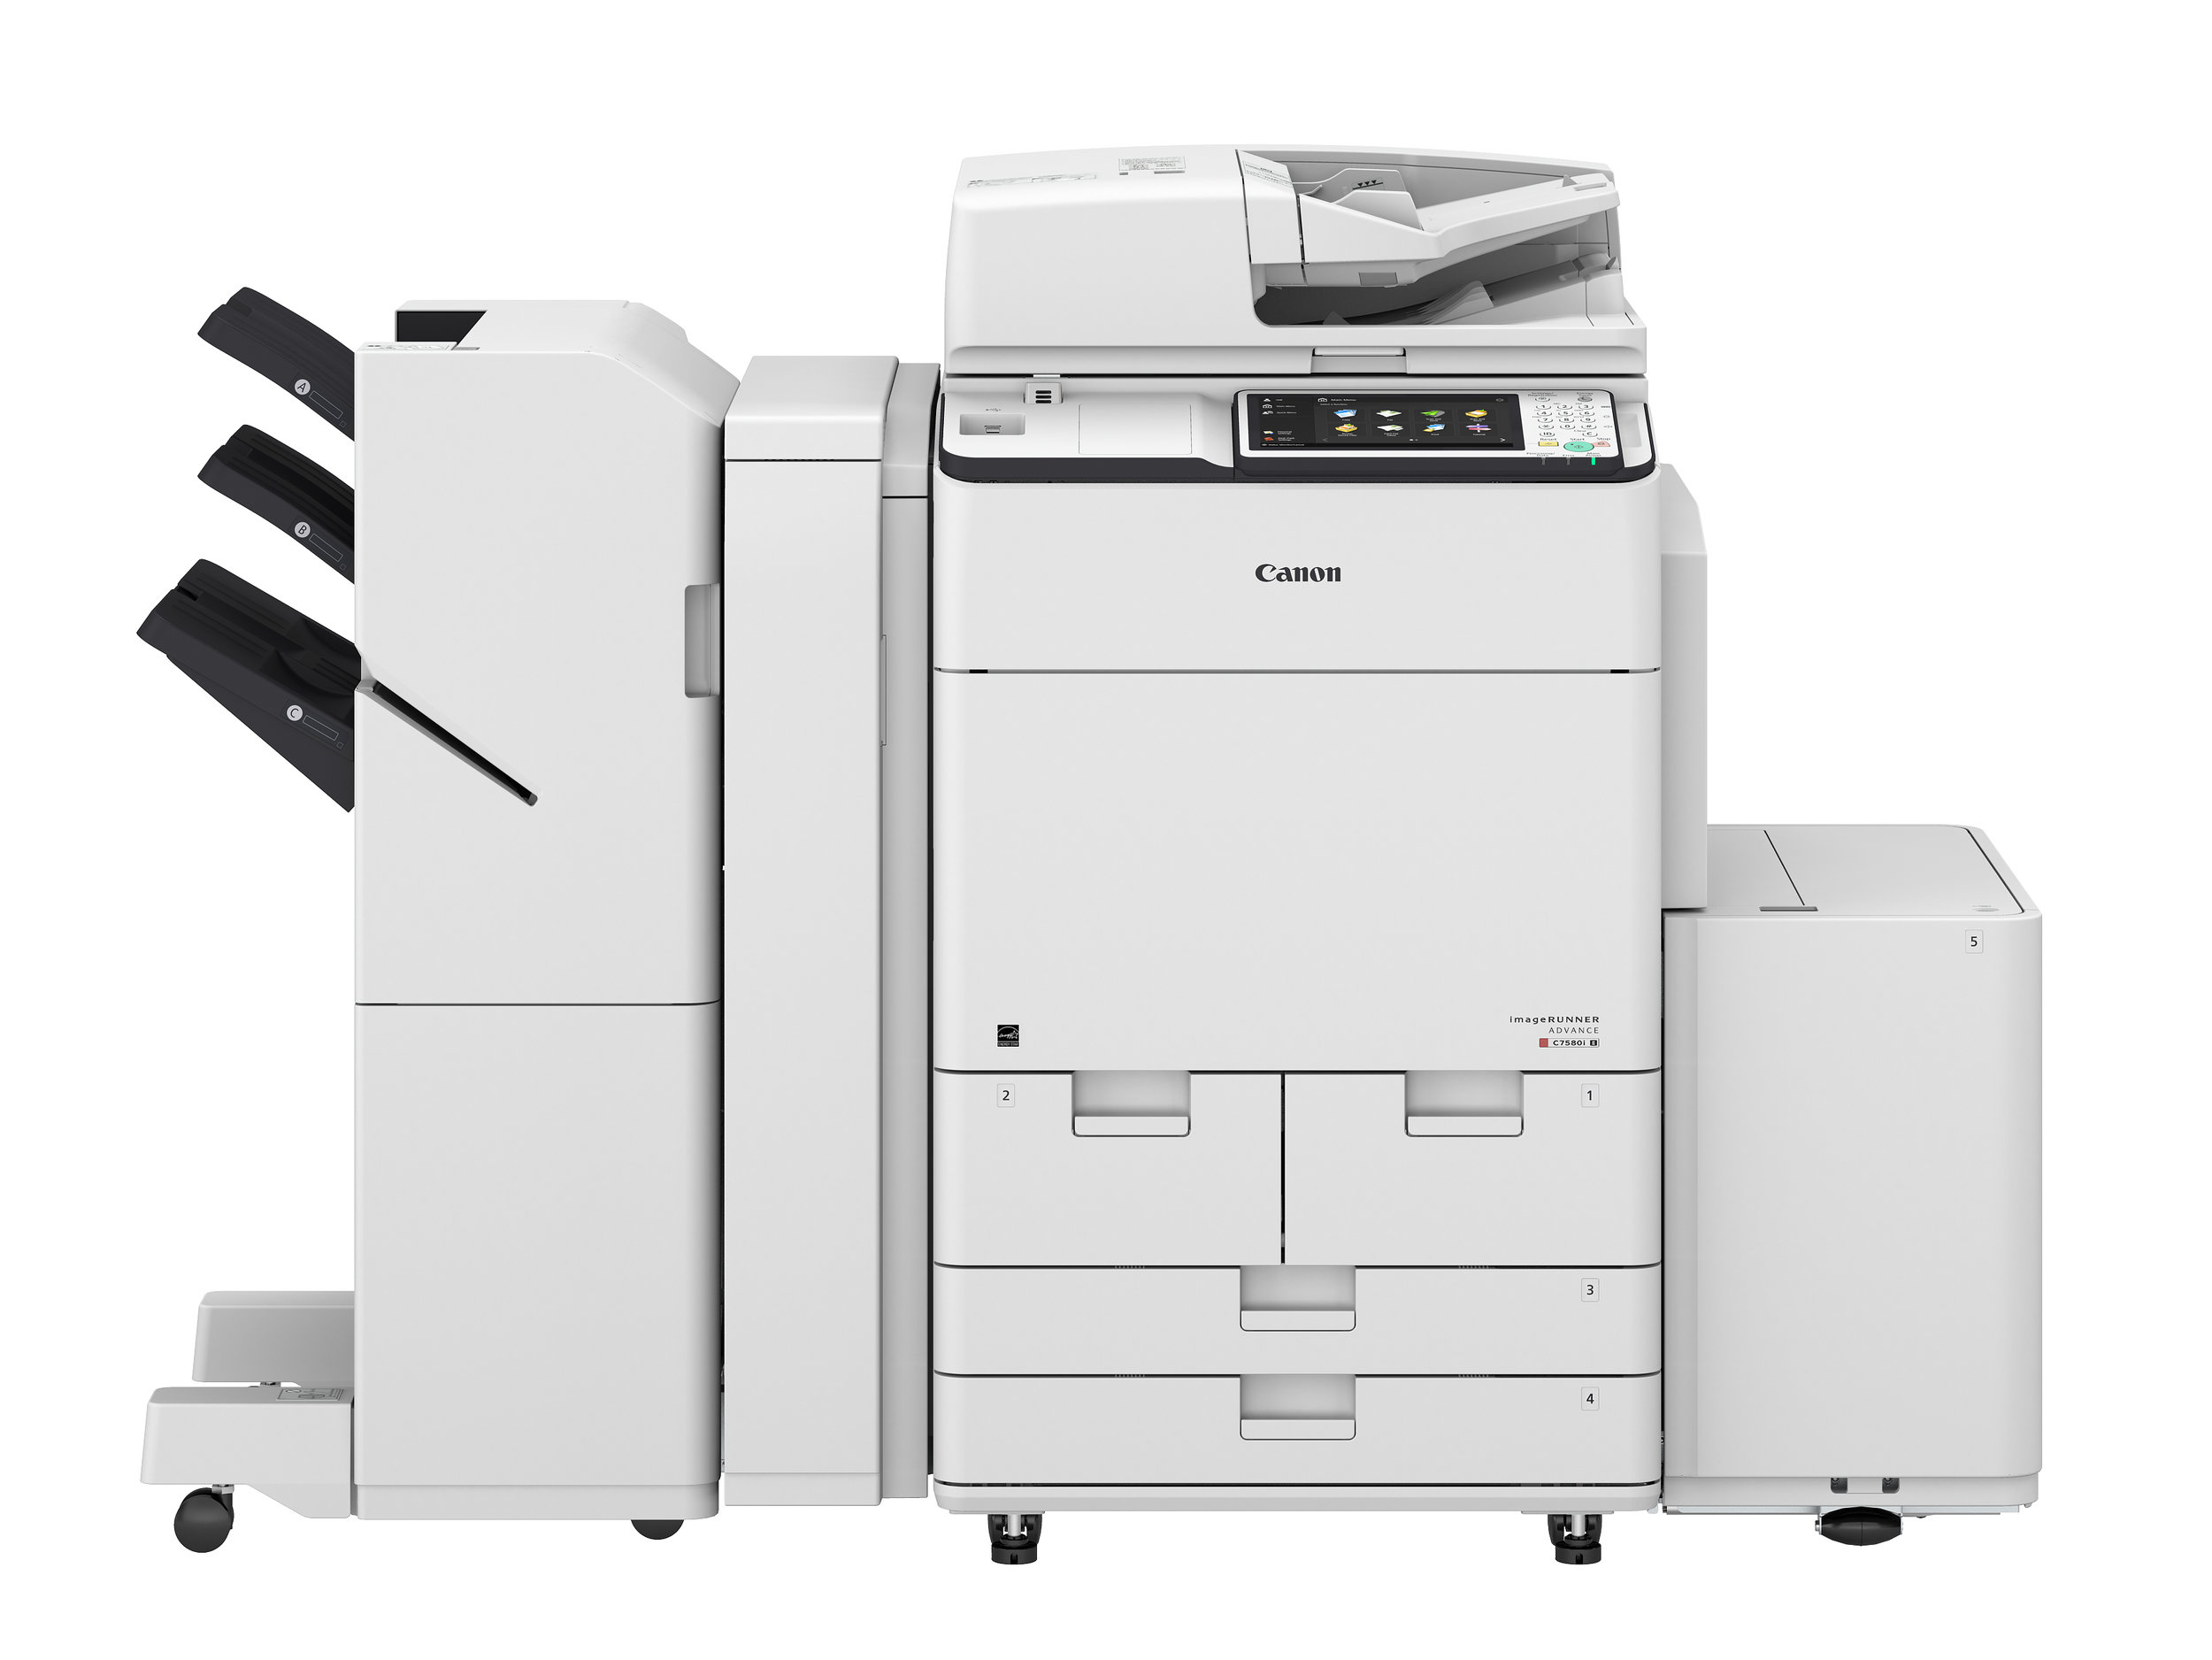 c7500-canon-copier-printer-long-island.jpg